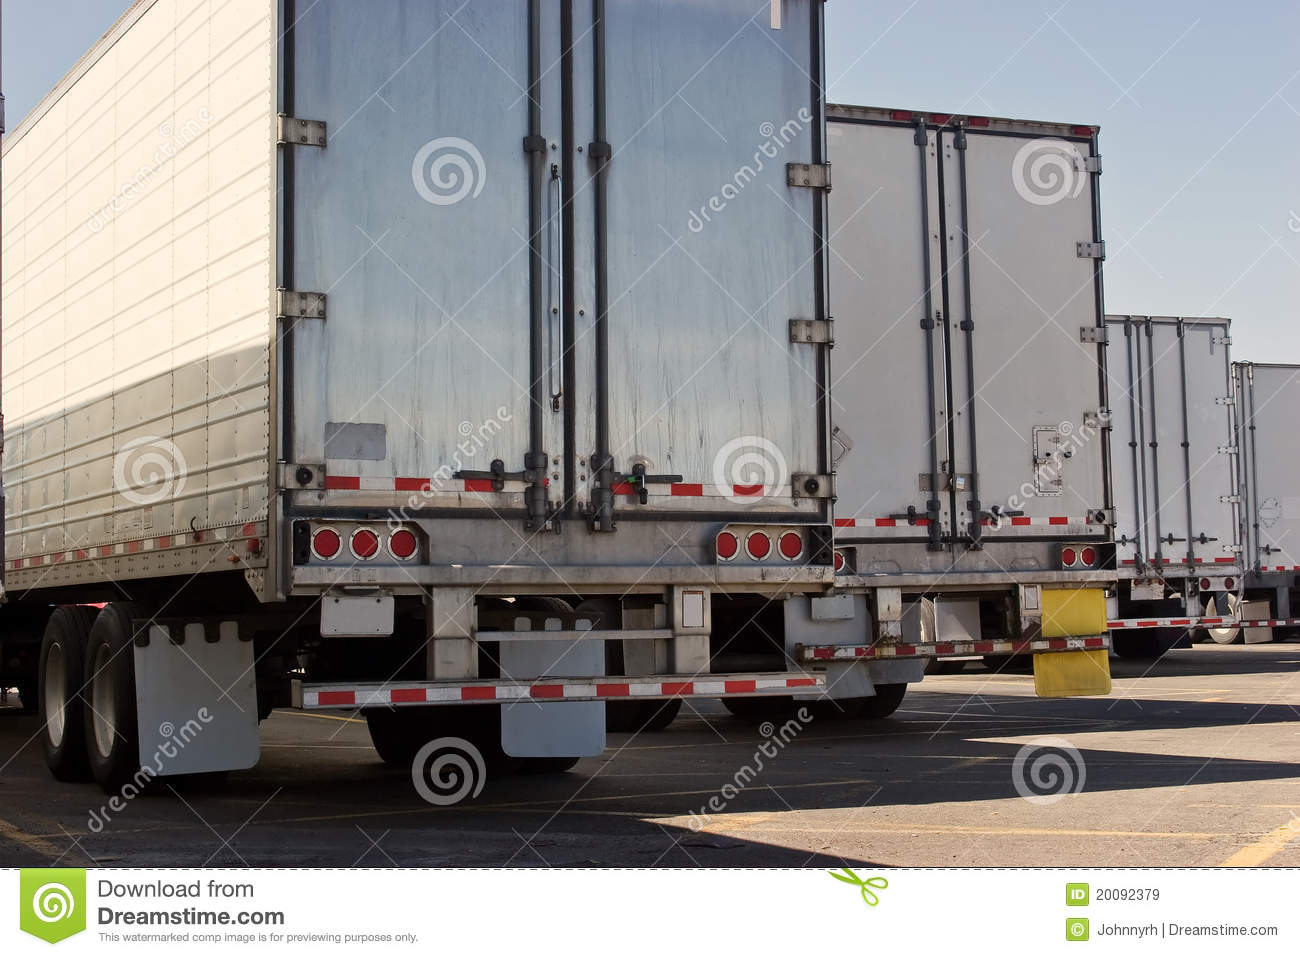 Shipping Container Trailer >> Behind Truck Trailers Royalty Free Stock Images - Image ...